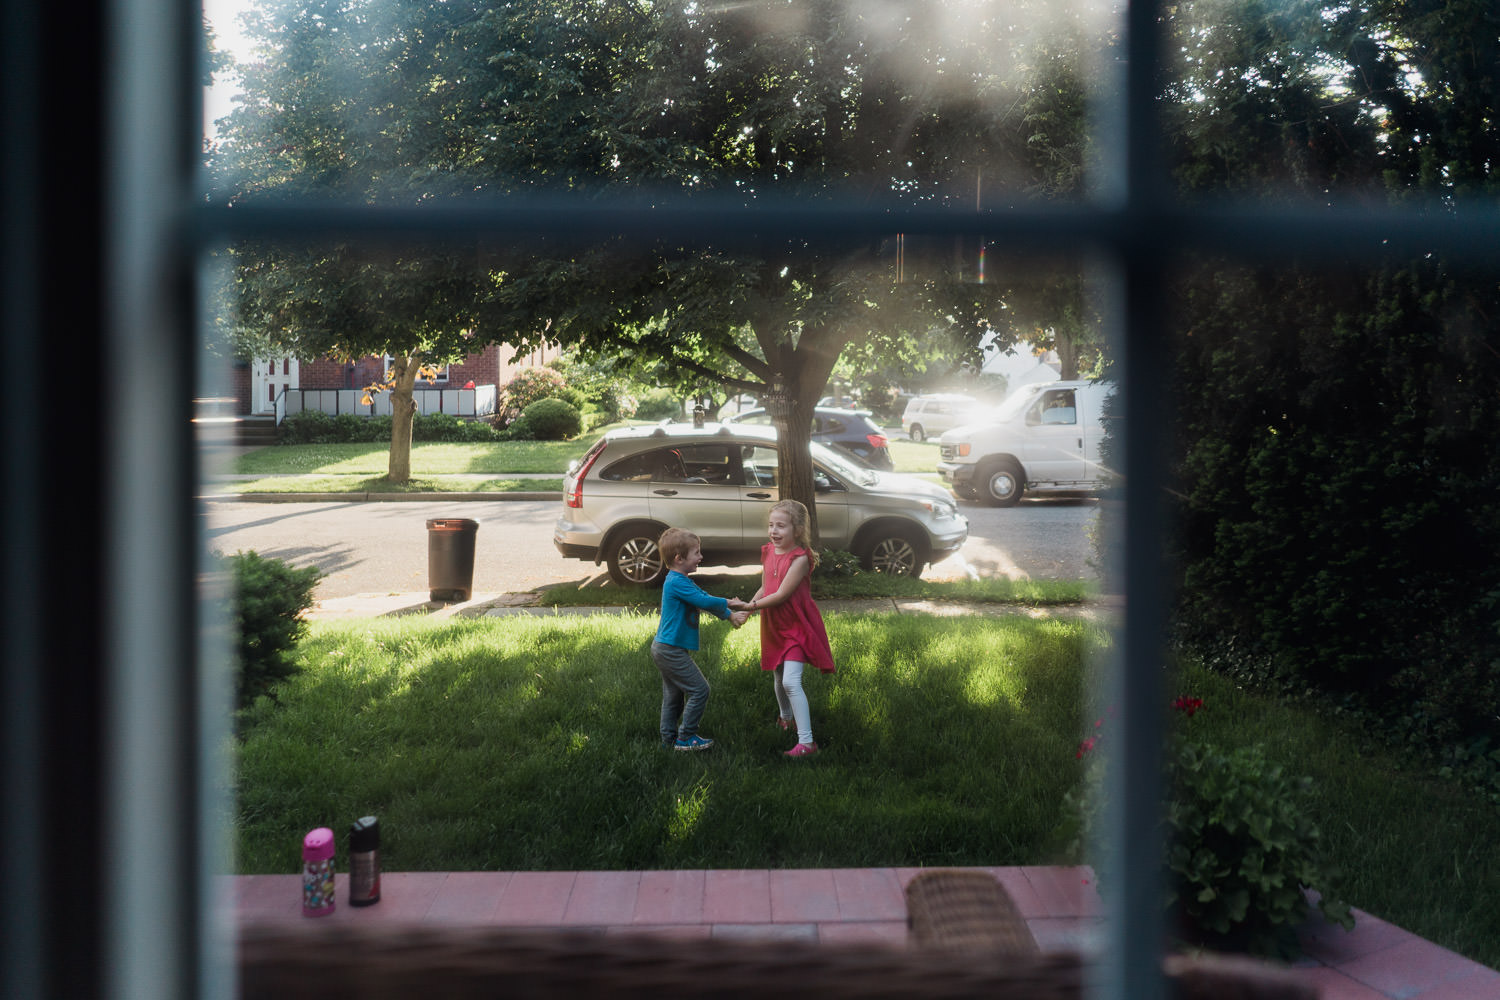 Two children play on a front lawn.